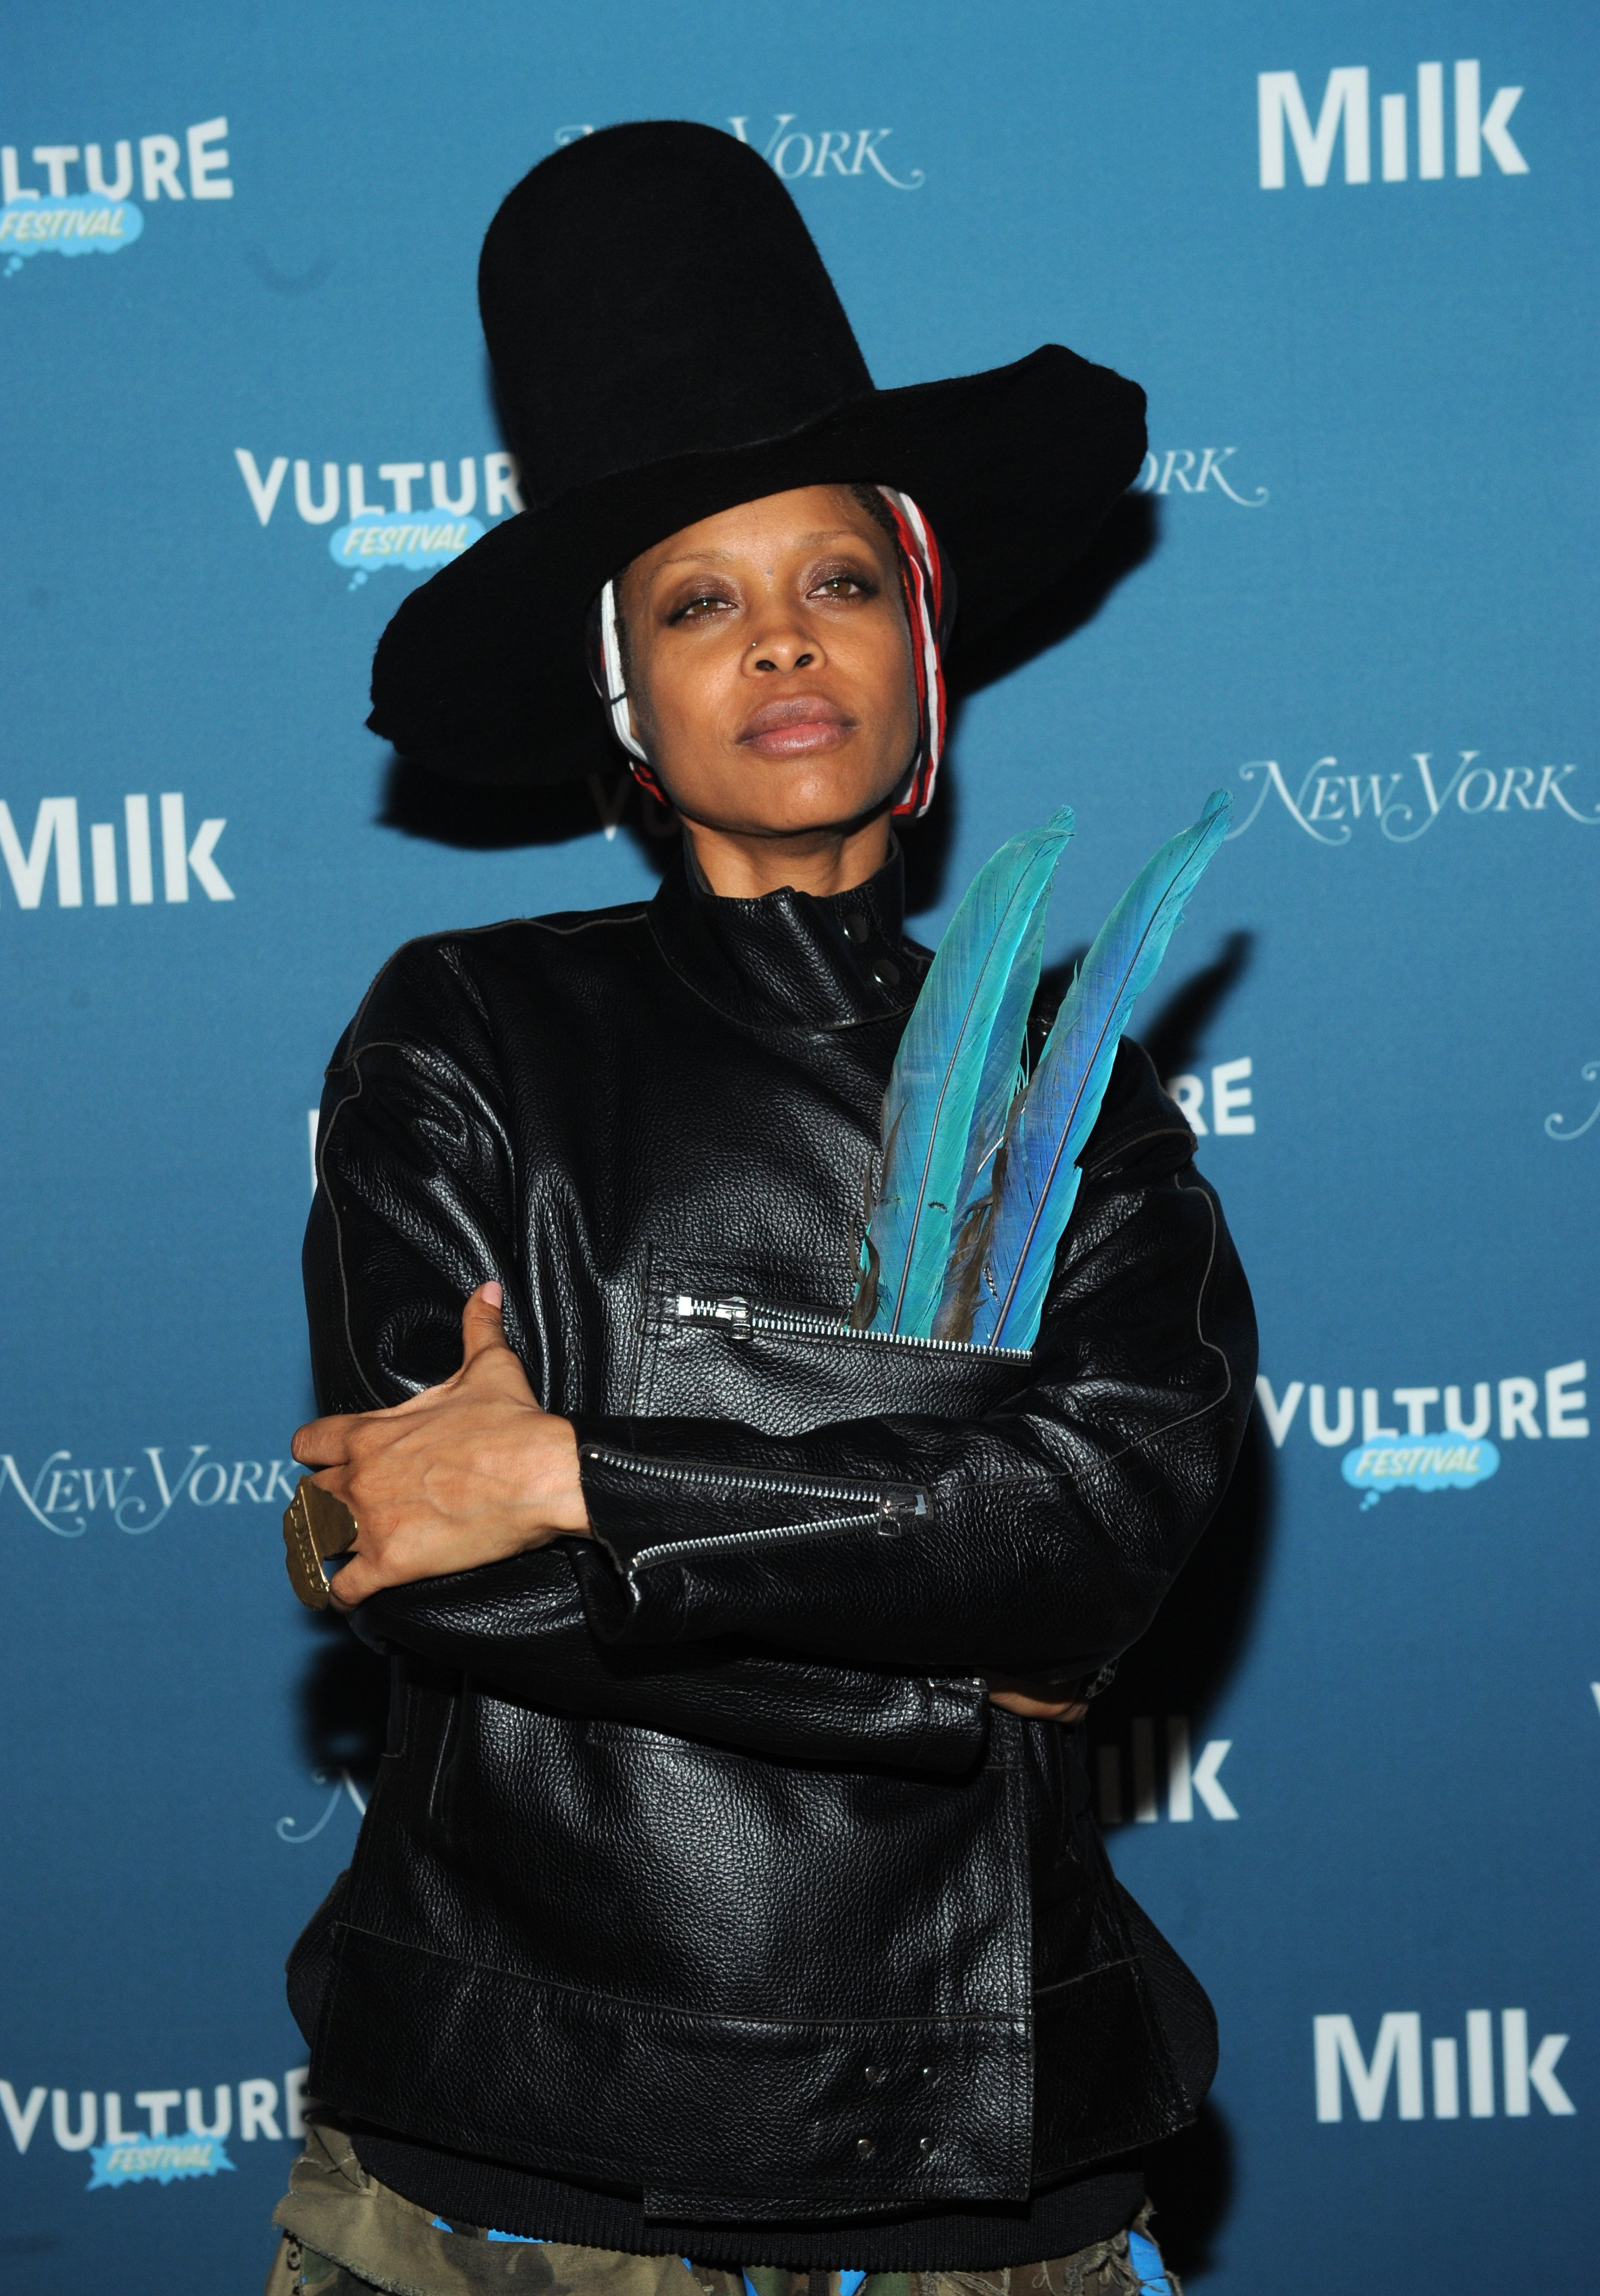 Erykah Badu at the Vulture Festival opening night party in New York City, 2014   Source: Getty Images